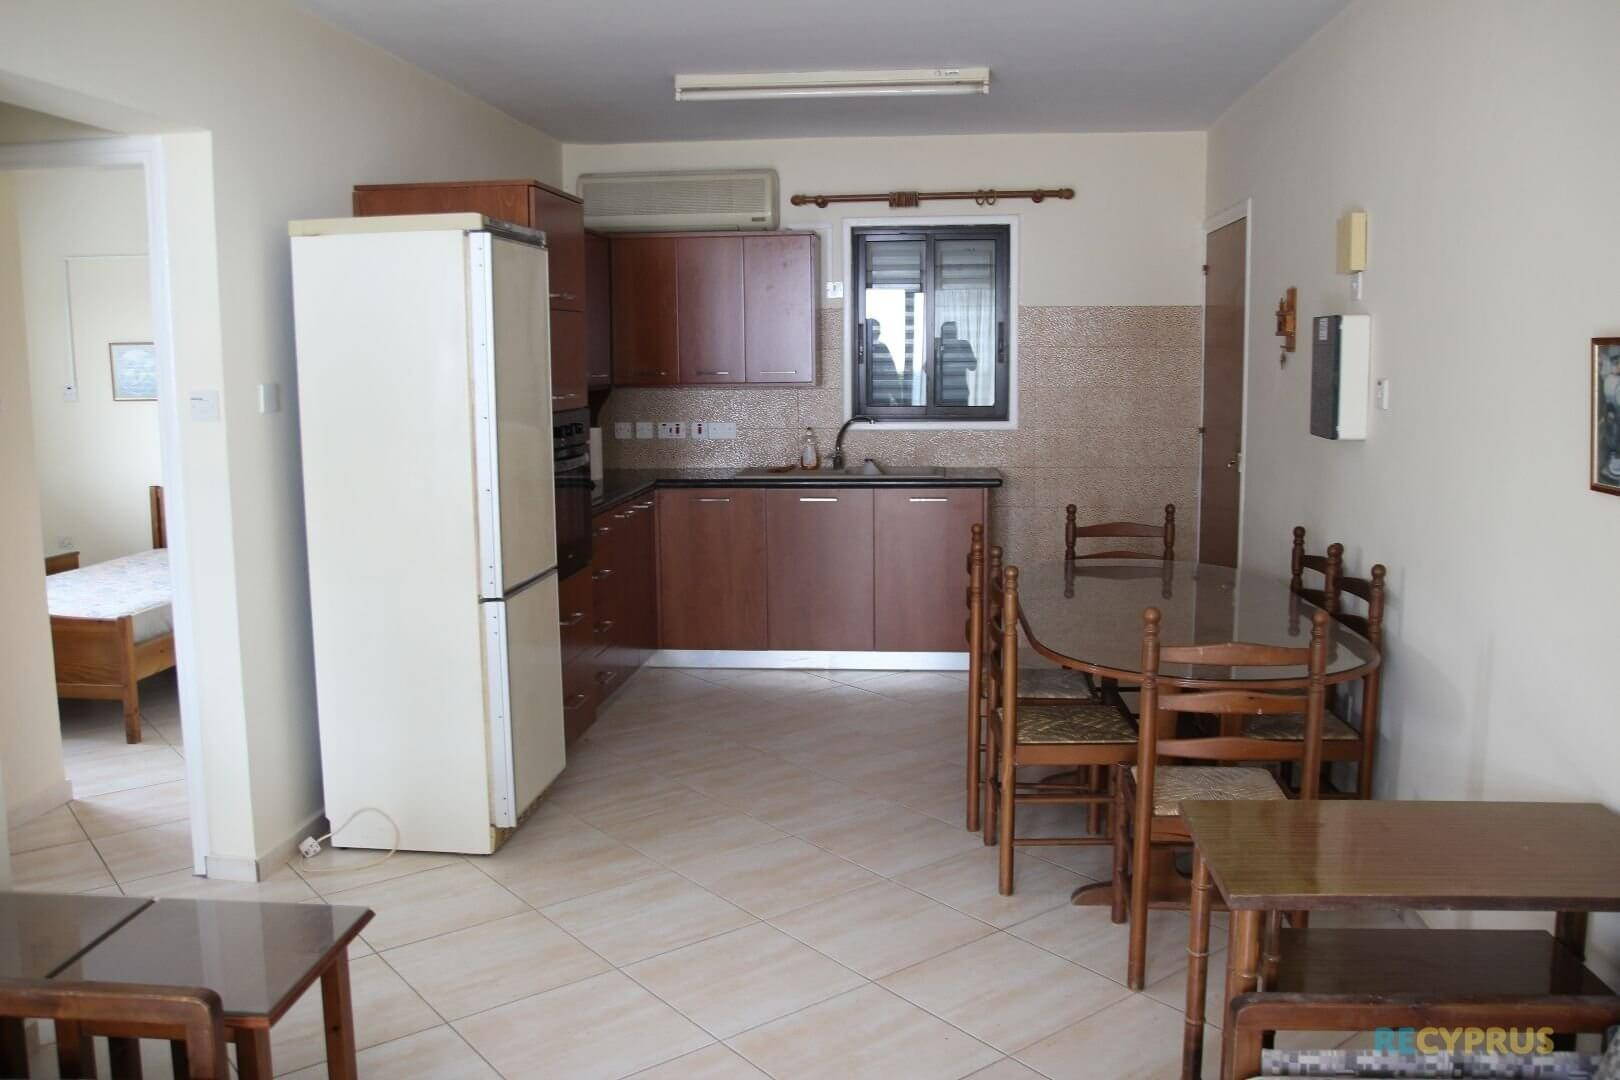 Apartment for sale Kapparis Famagusta Cyprus 1 3559